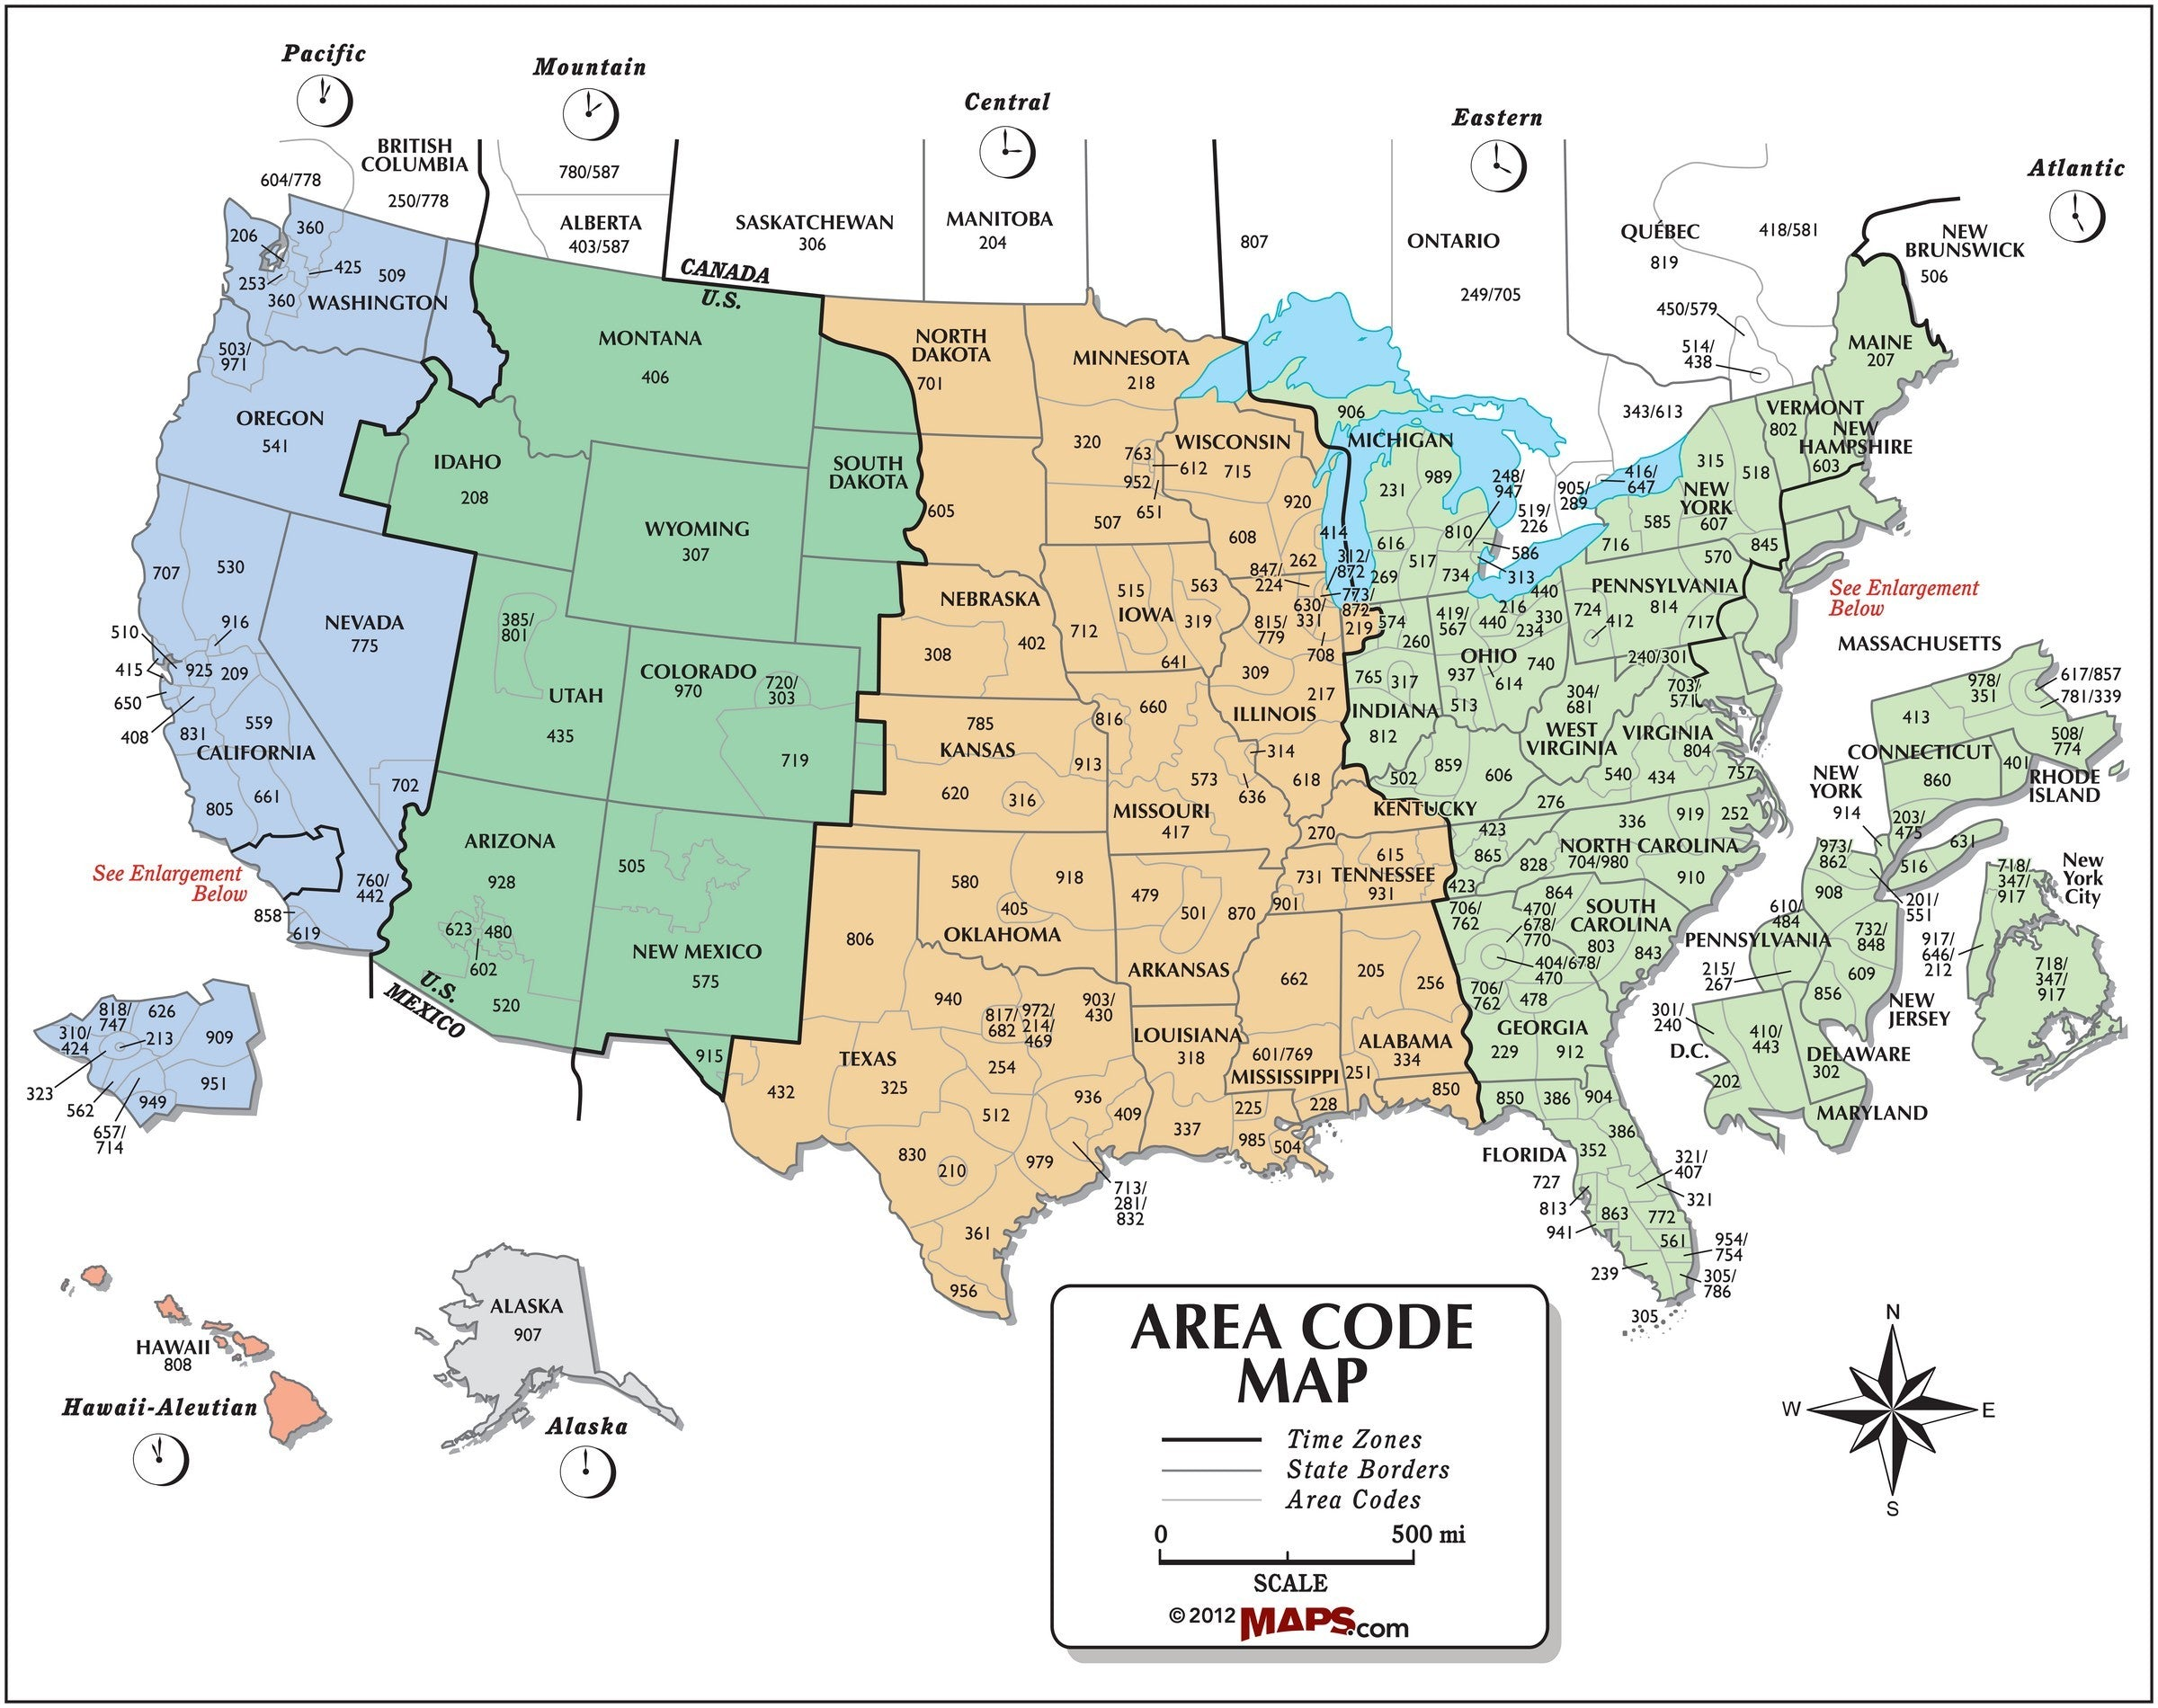 USA Area Code and Time Zone Wall Map United States Map And Time on civil war time map, indiana time map, canada time map, world time map, europe time map, earth time map, puerto rico time map, german time map, florida time map, international time map, israel time map, kentucky time map, guam time map, time zone map, local time map, christianity time map, romania time map, england time map, interstellar time map, peru time map,